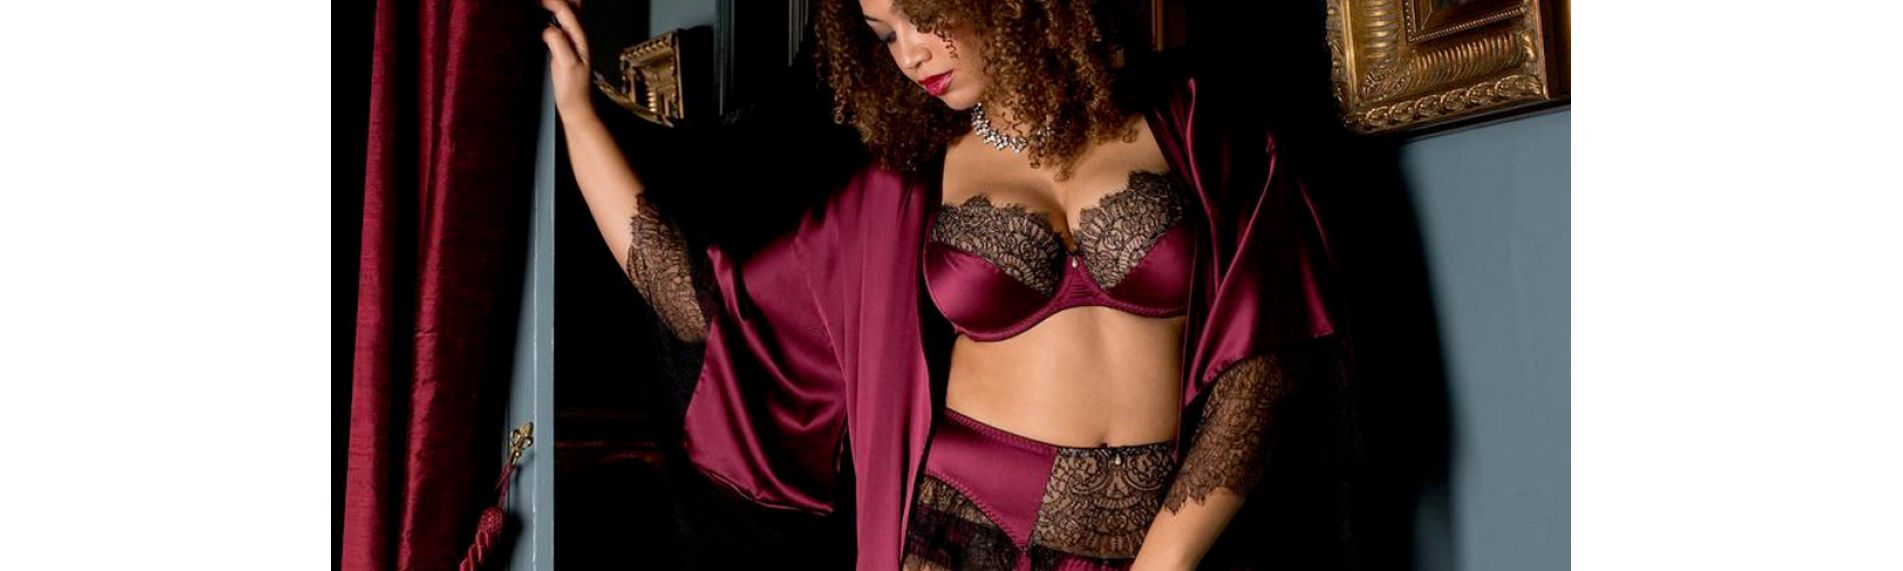 Harlow and Fox Lingerie Brand. Bras and Panties